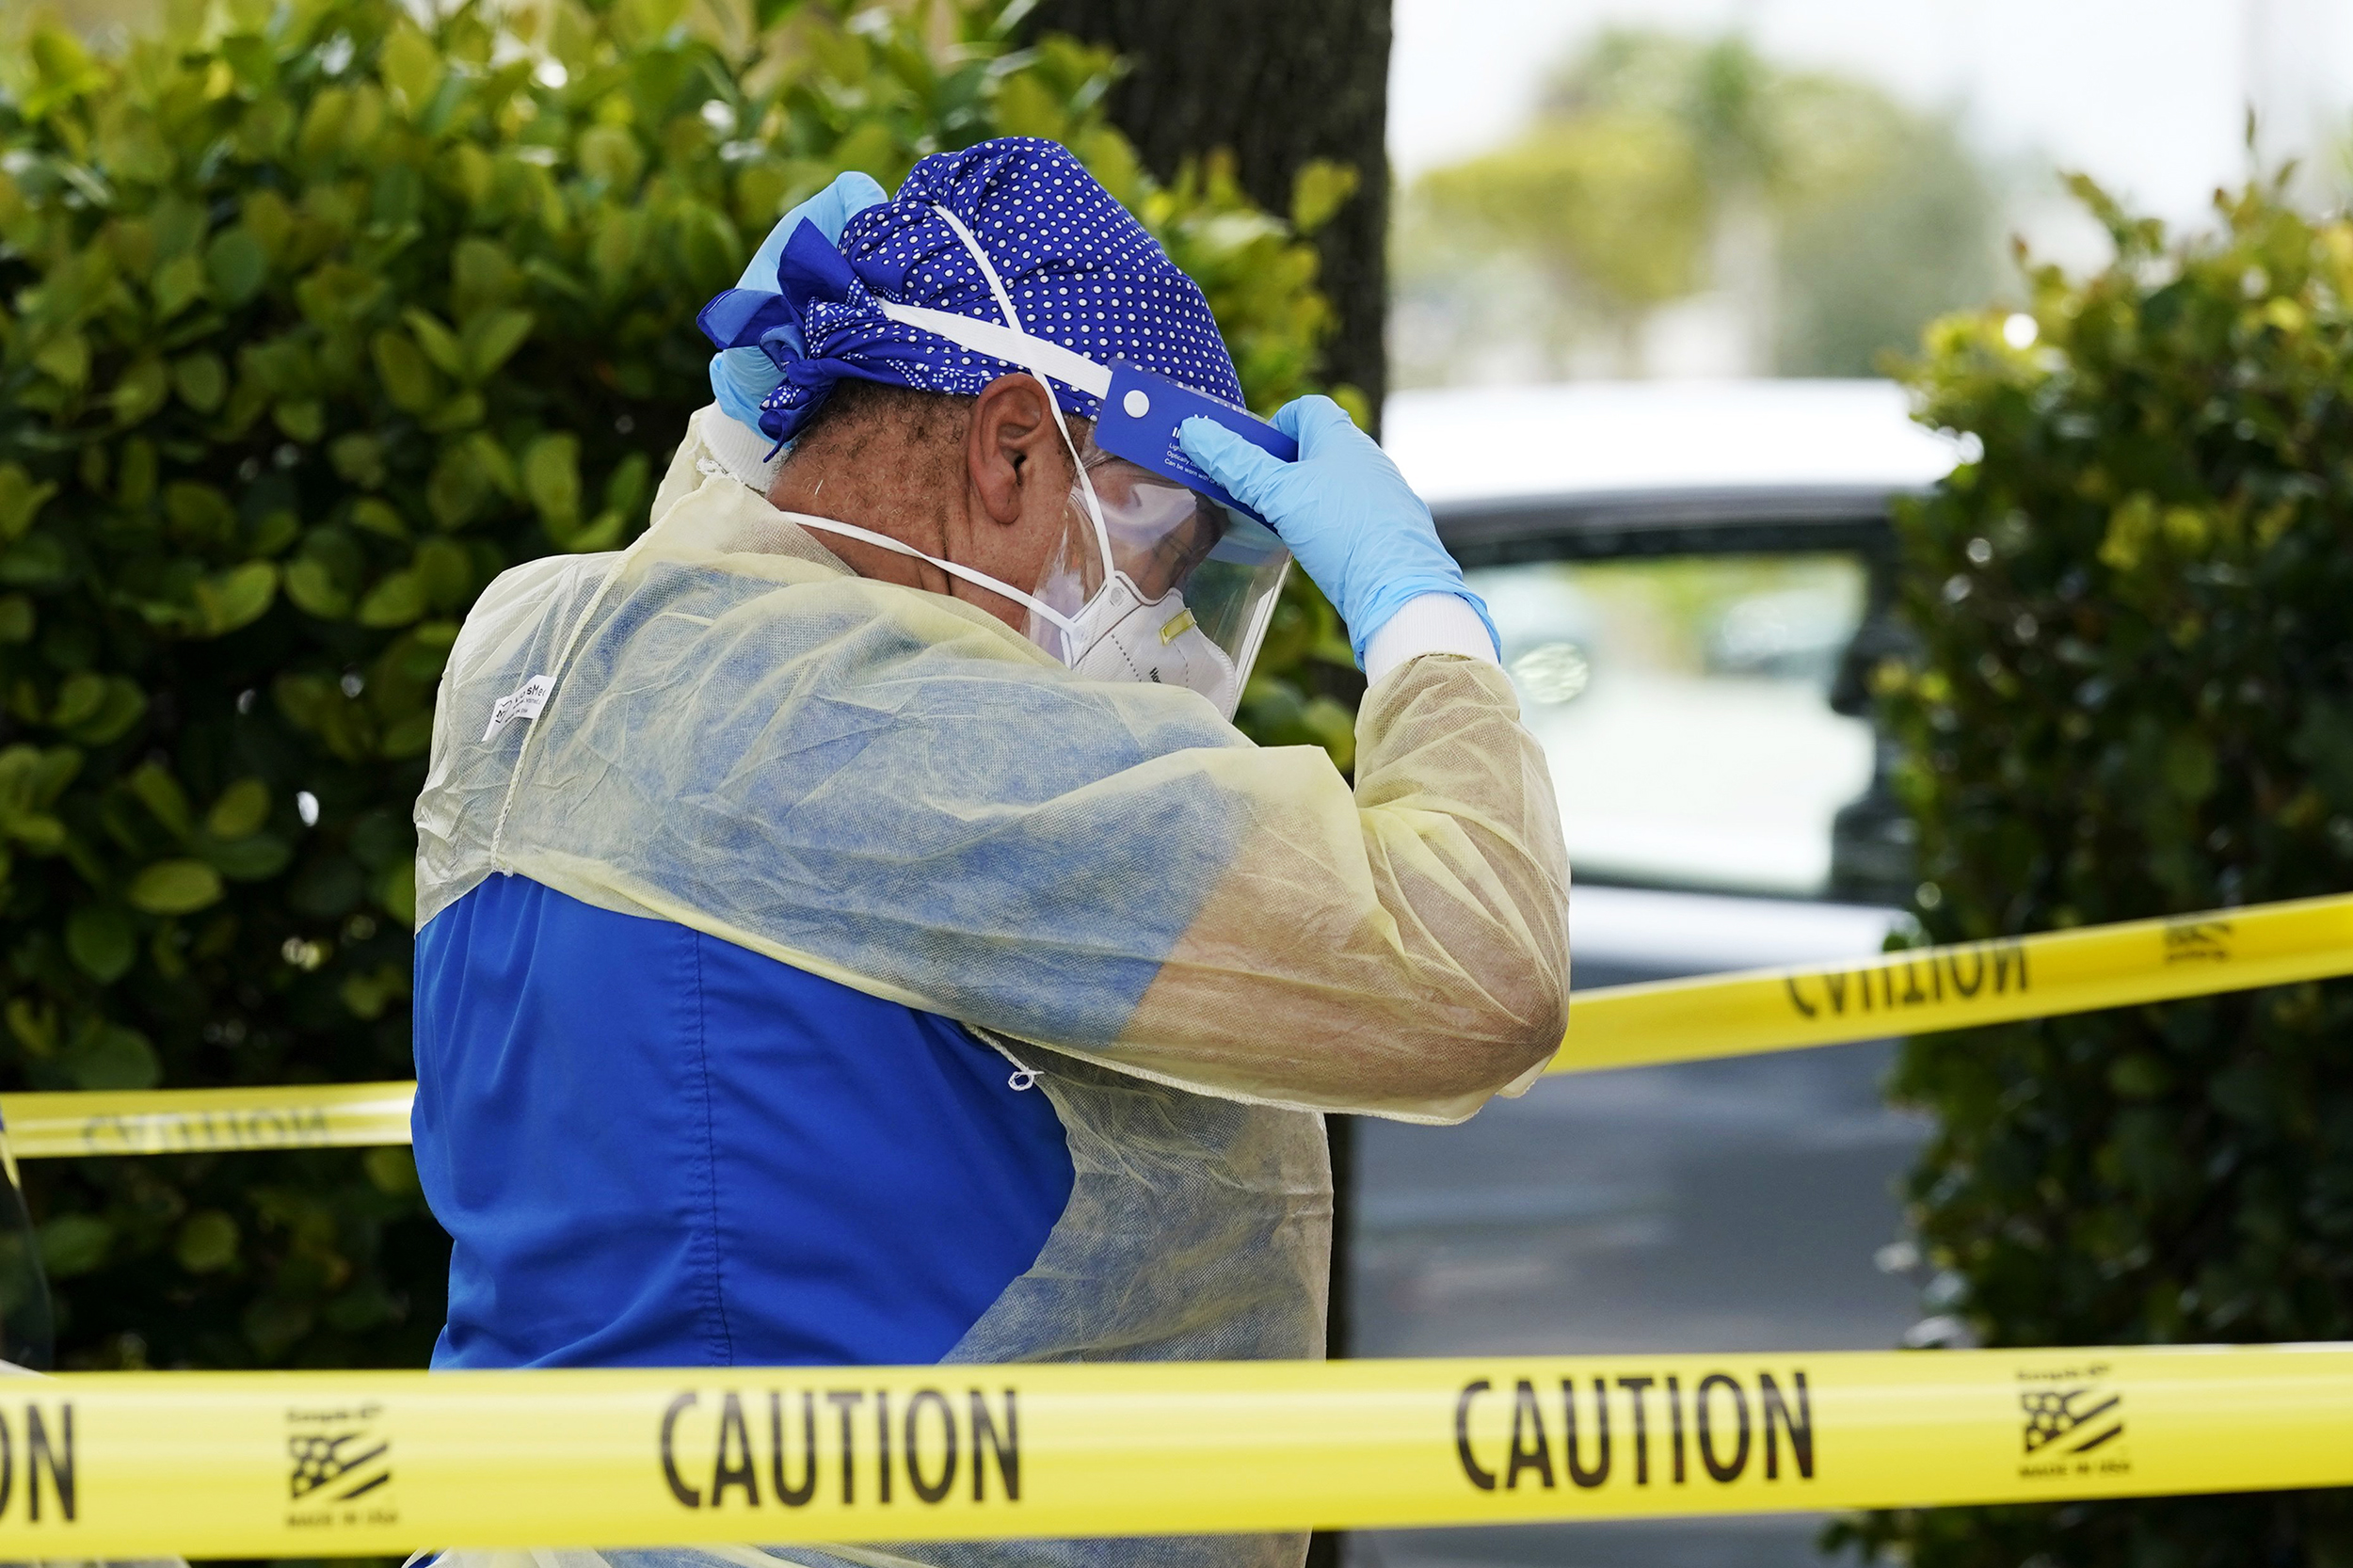 Covid is surging in Florida. Doctors and nurses are back in crisis mode.